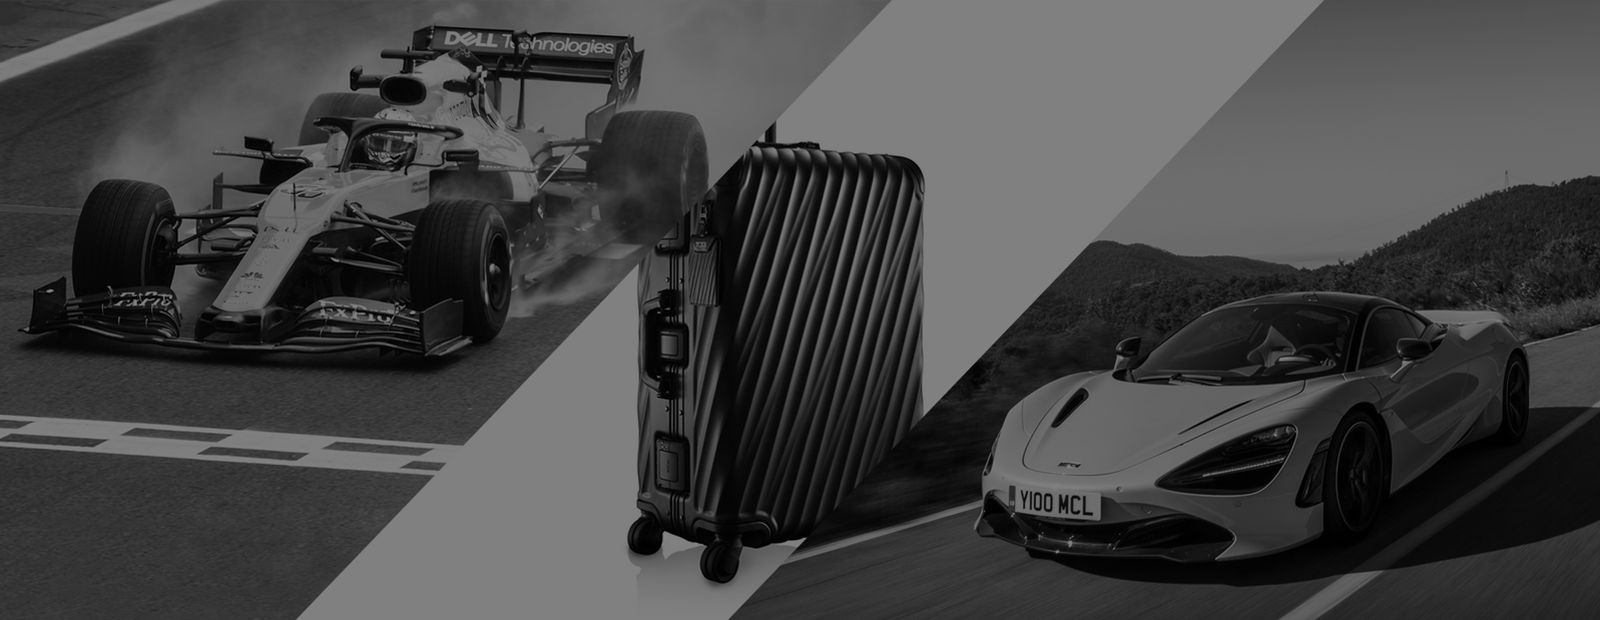 McLaren announces TUMI as official luggage partner